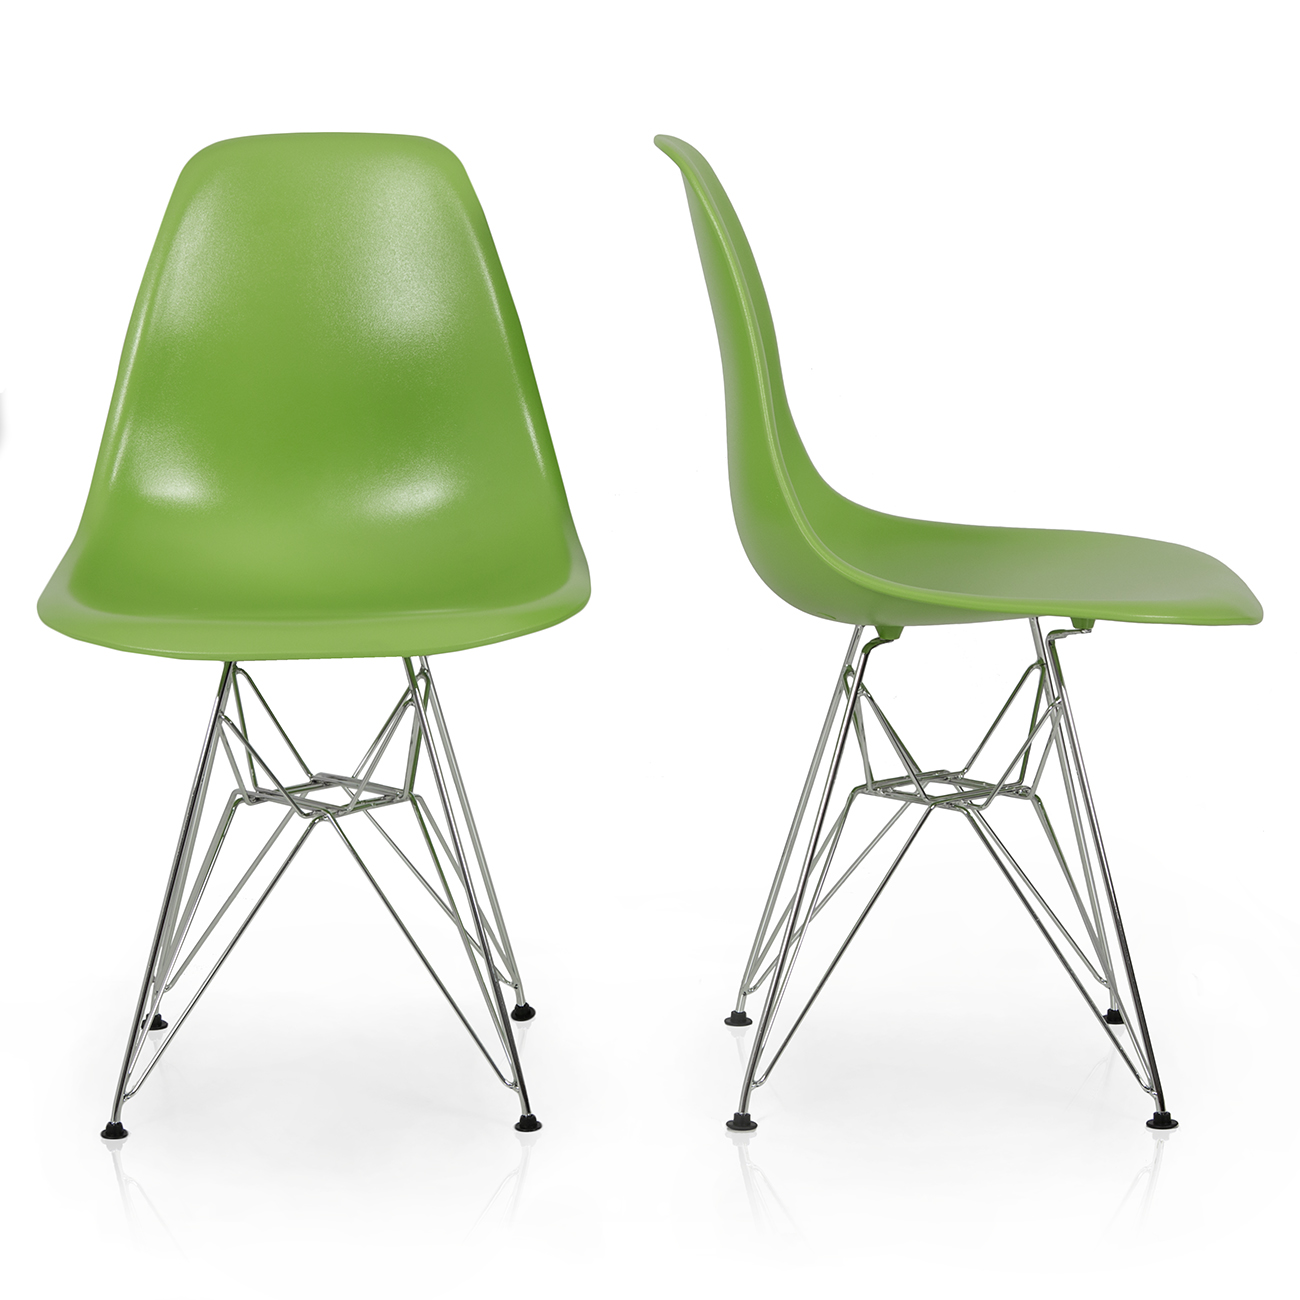 Eames Style Chair Green Eames Style Chairs Green